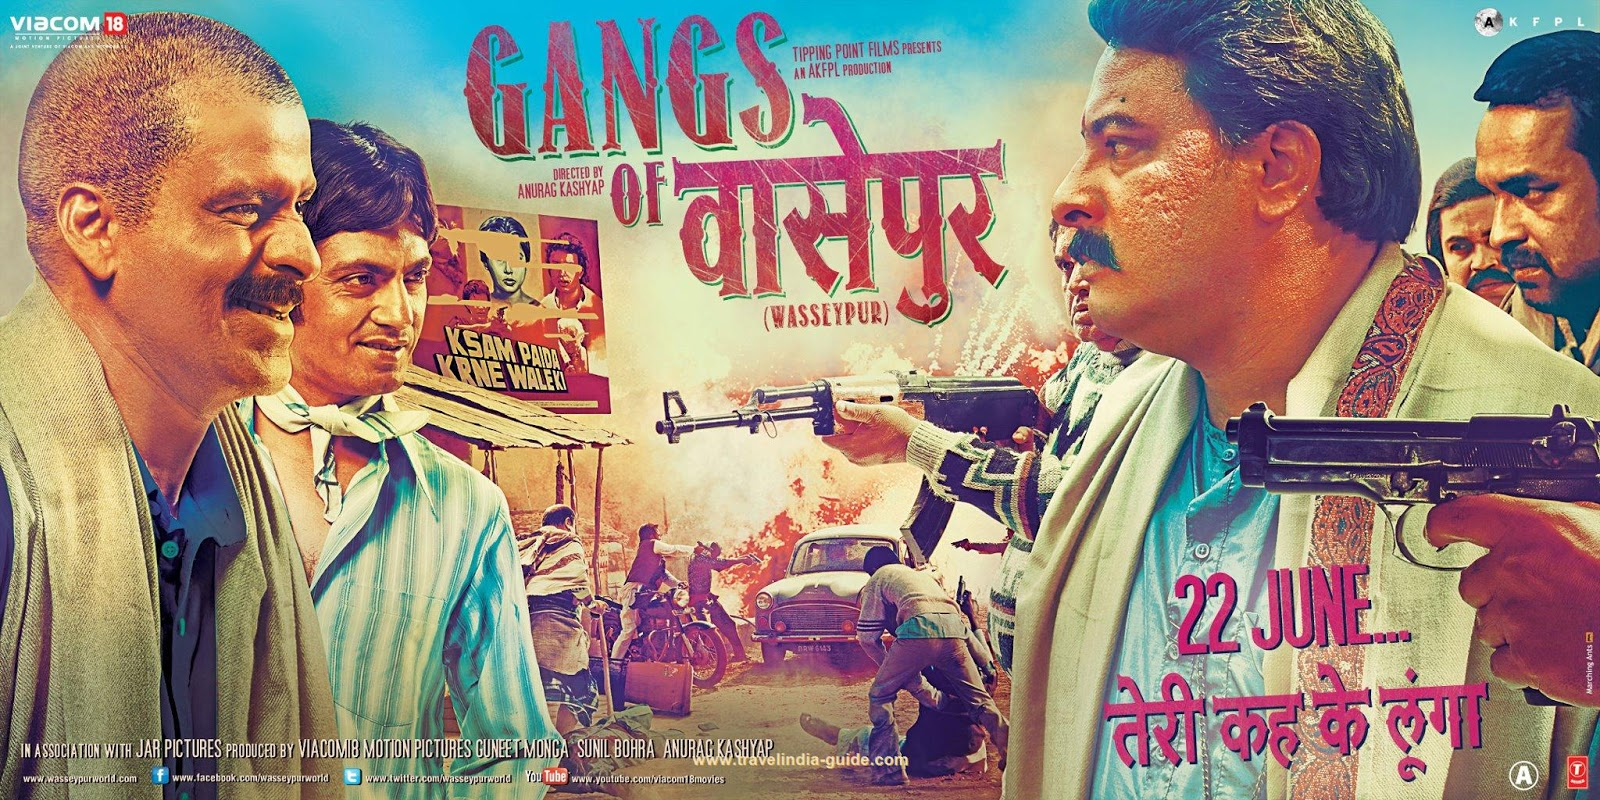 http://4.bp.blogspot.com/-xnmfr_xHU50/UP6vIVJJbBI/AAAAAAAAHCo/DVbZYnaaMes/s1600/gangs-of-wasseypur-new-posters-and-wallpapers-abX.jpg